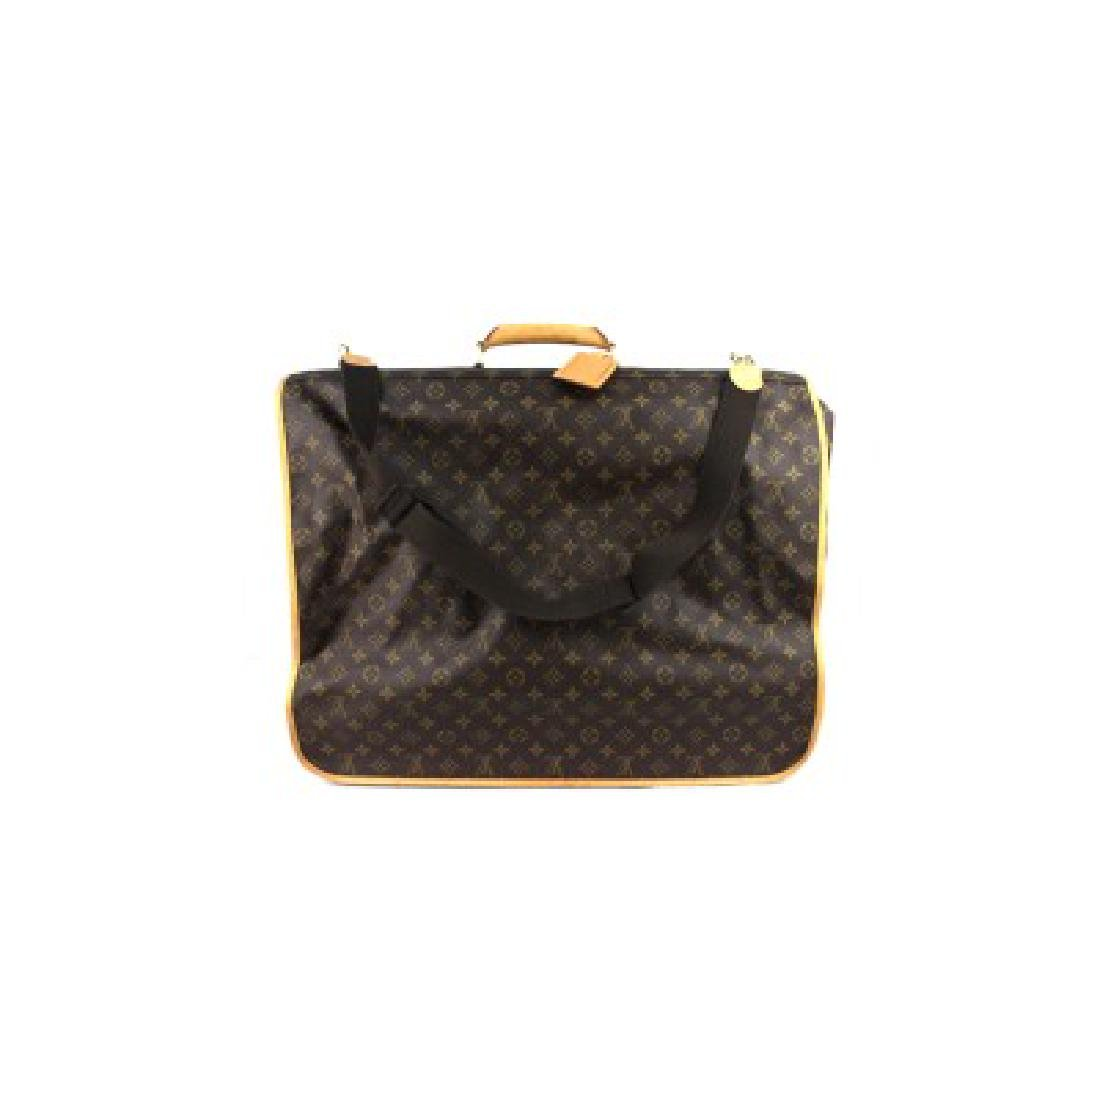 Louis Vuitton Travel Garment Bag Monogram